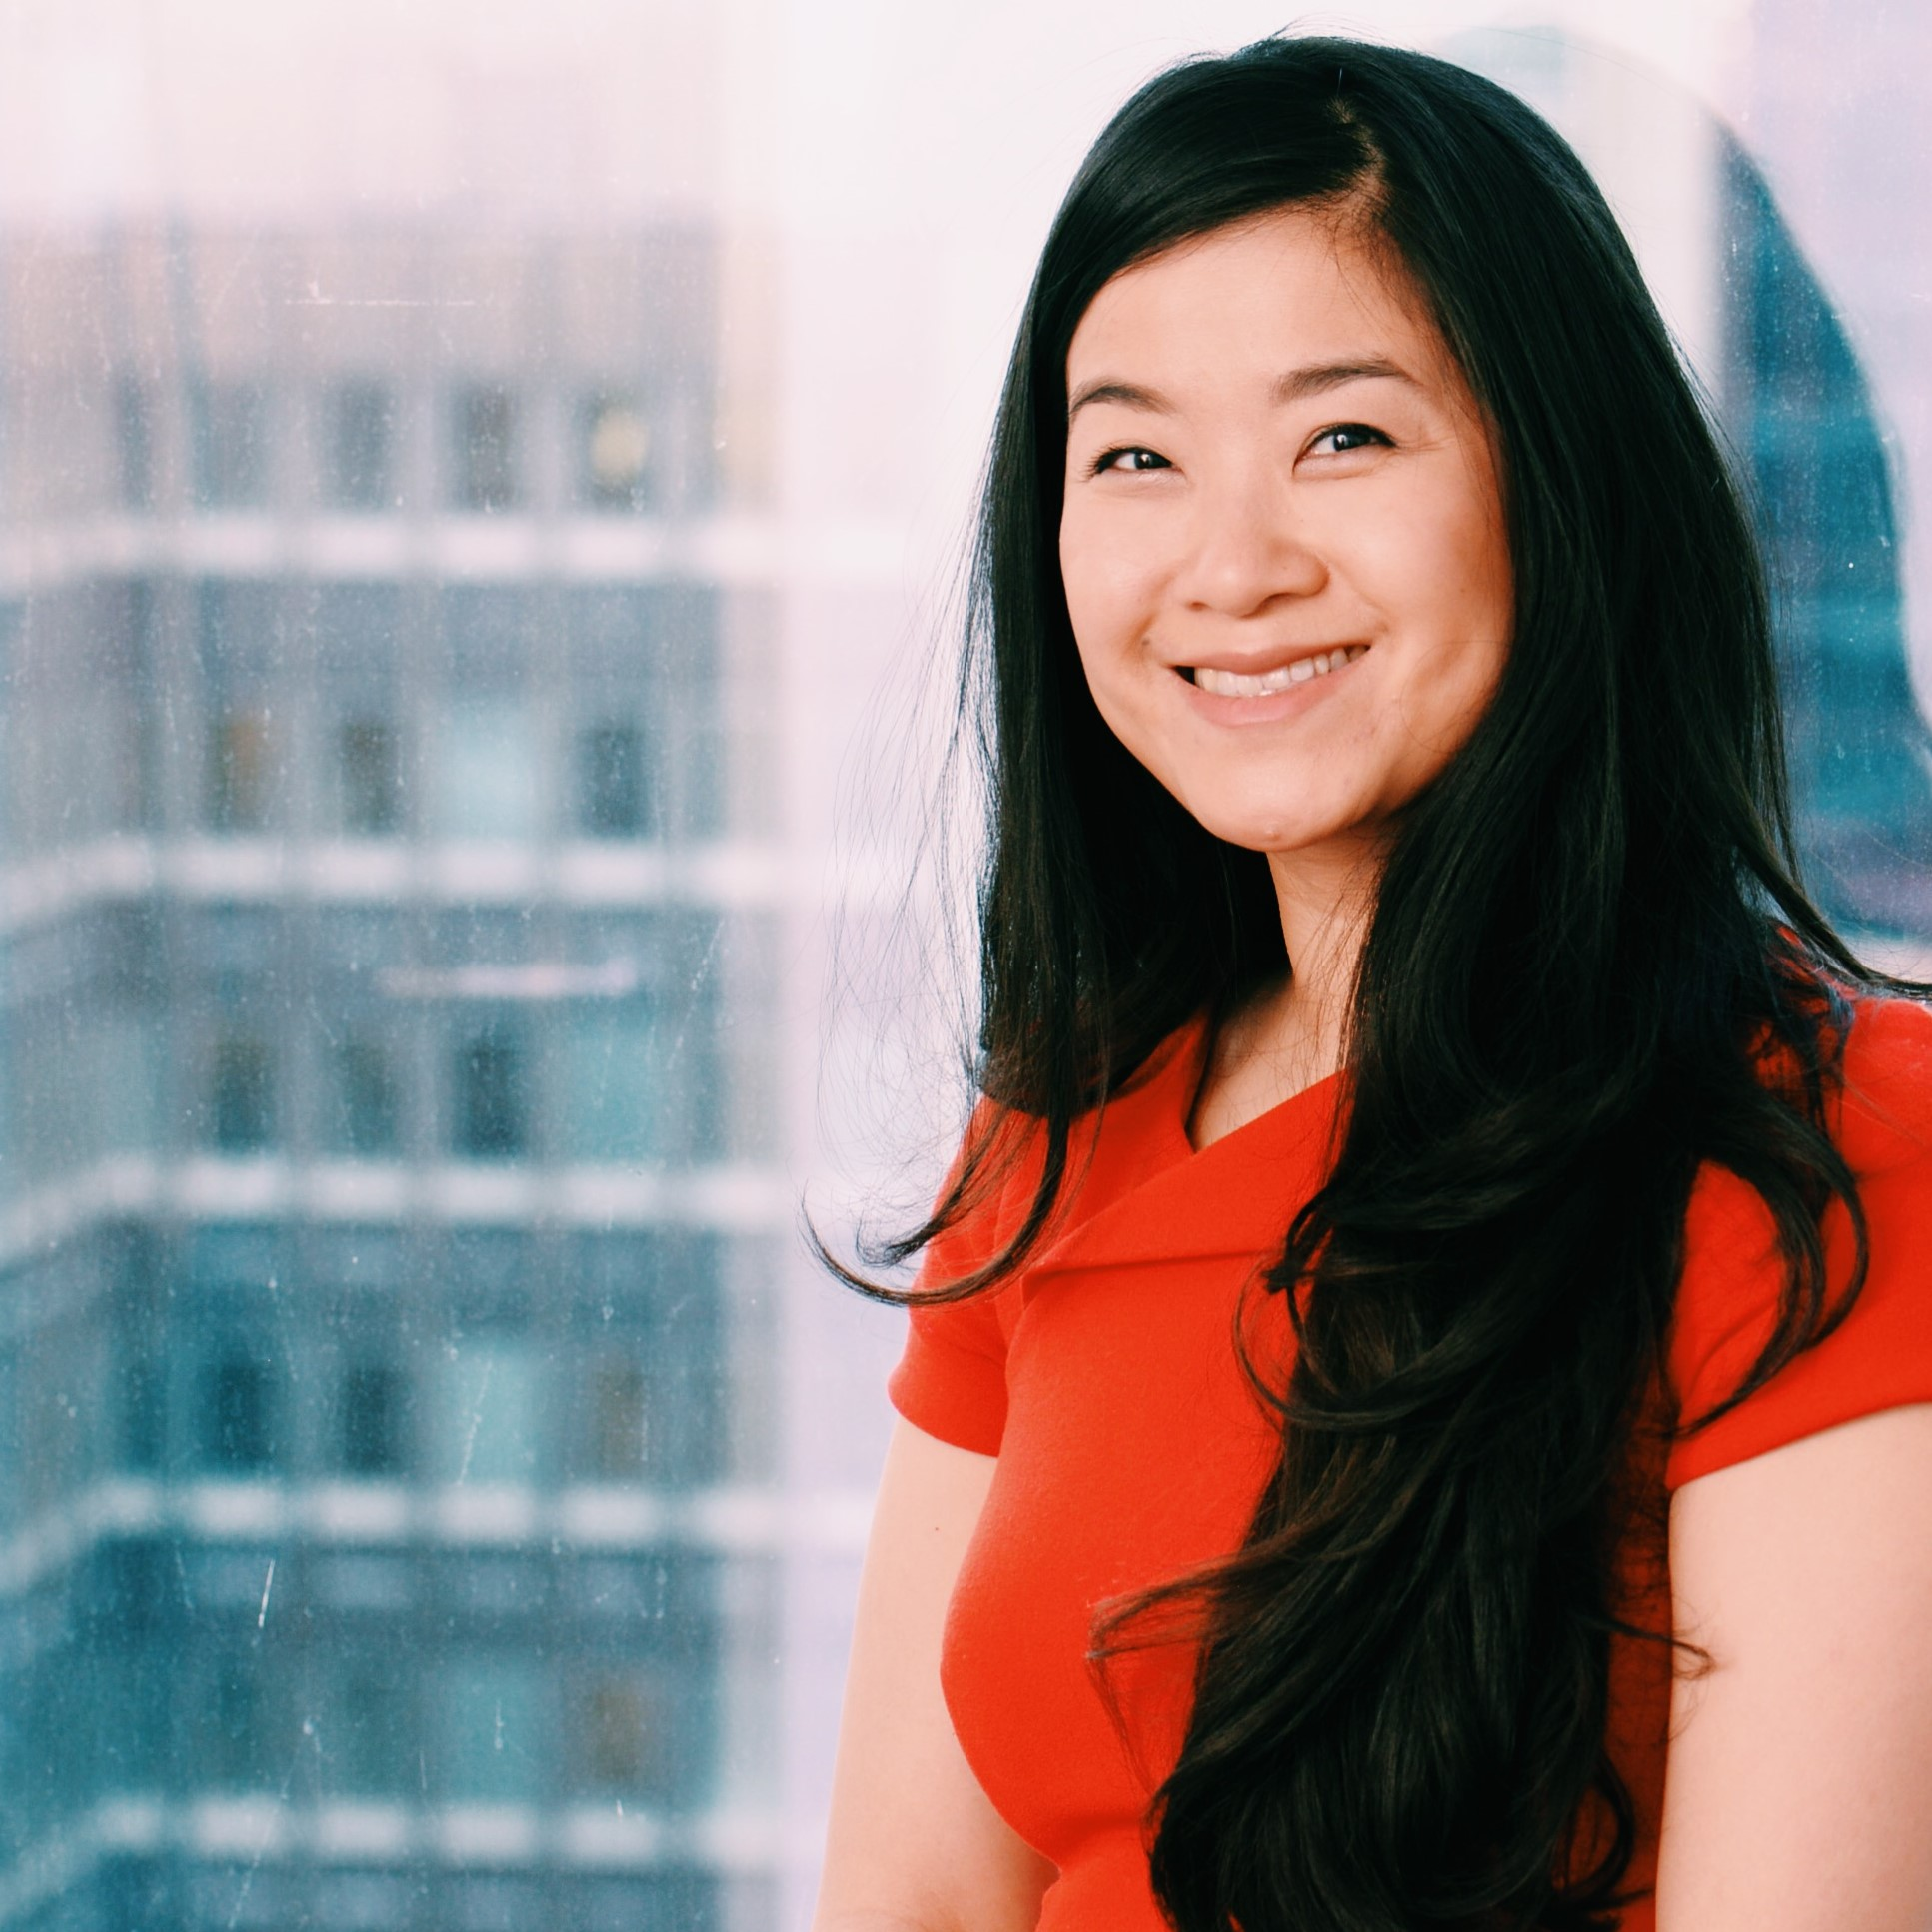 Louisa is former equities trader, turned FinTech enthusiast and is currently leading Deloitte Canada's Blockchain practice as the National Market Lead. She works with a group of strategy specialists engaged in assisting clients to understand and apply blockchain /distributed ledger technology (DLT) concepts to their business models, technology infrastructure and operating processes. Ms. Bai has over a decade of experience in the financial services industry across Canada, the US and Asia, specifically in Capital Markets. Since moving back to Toronto from Hong Kong in 2016, Louisa has developed an enthusiasm for disruptive technologies and their intersection with enterprise-wide initiatives.